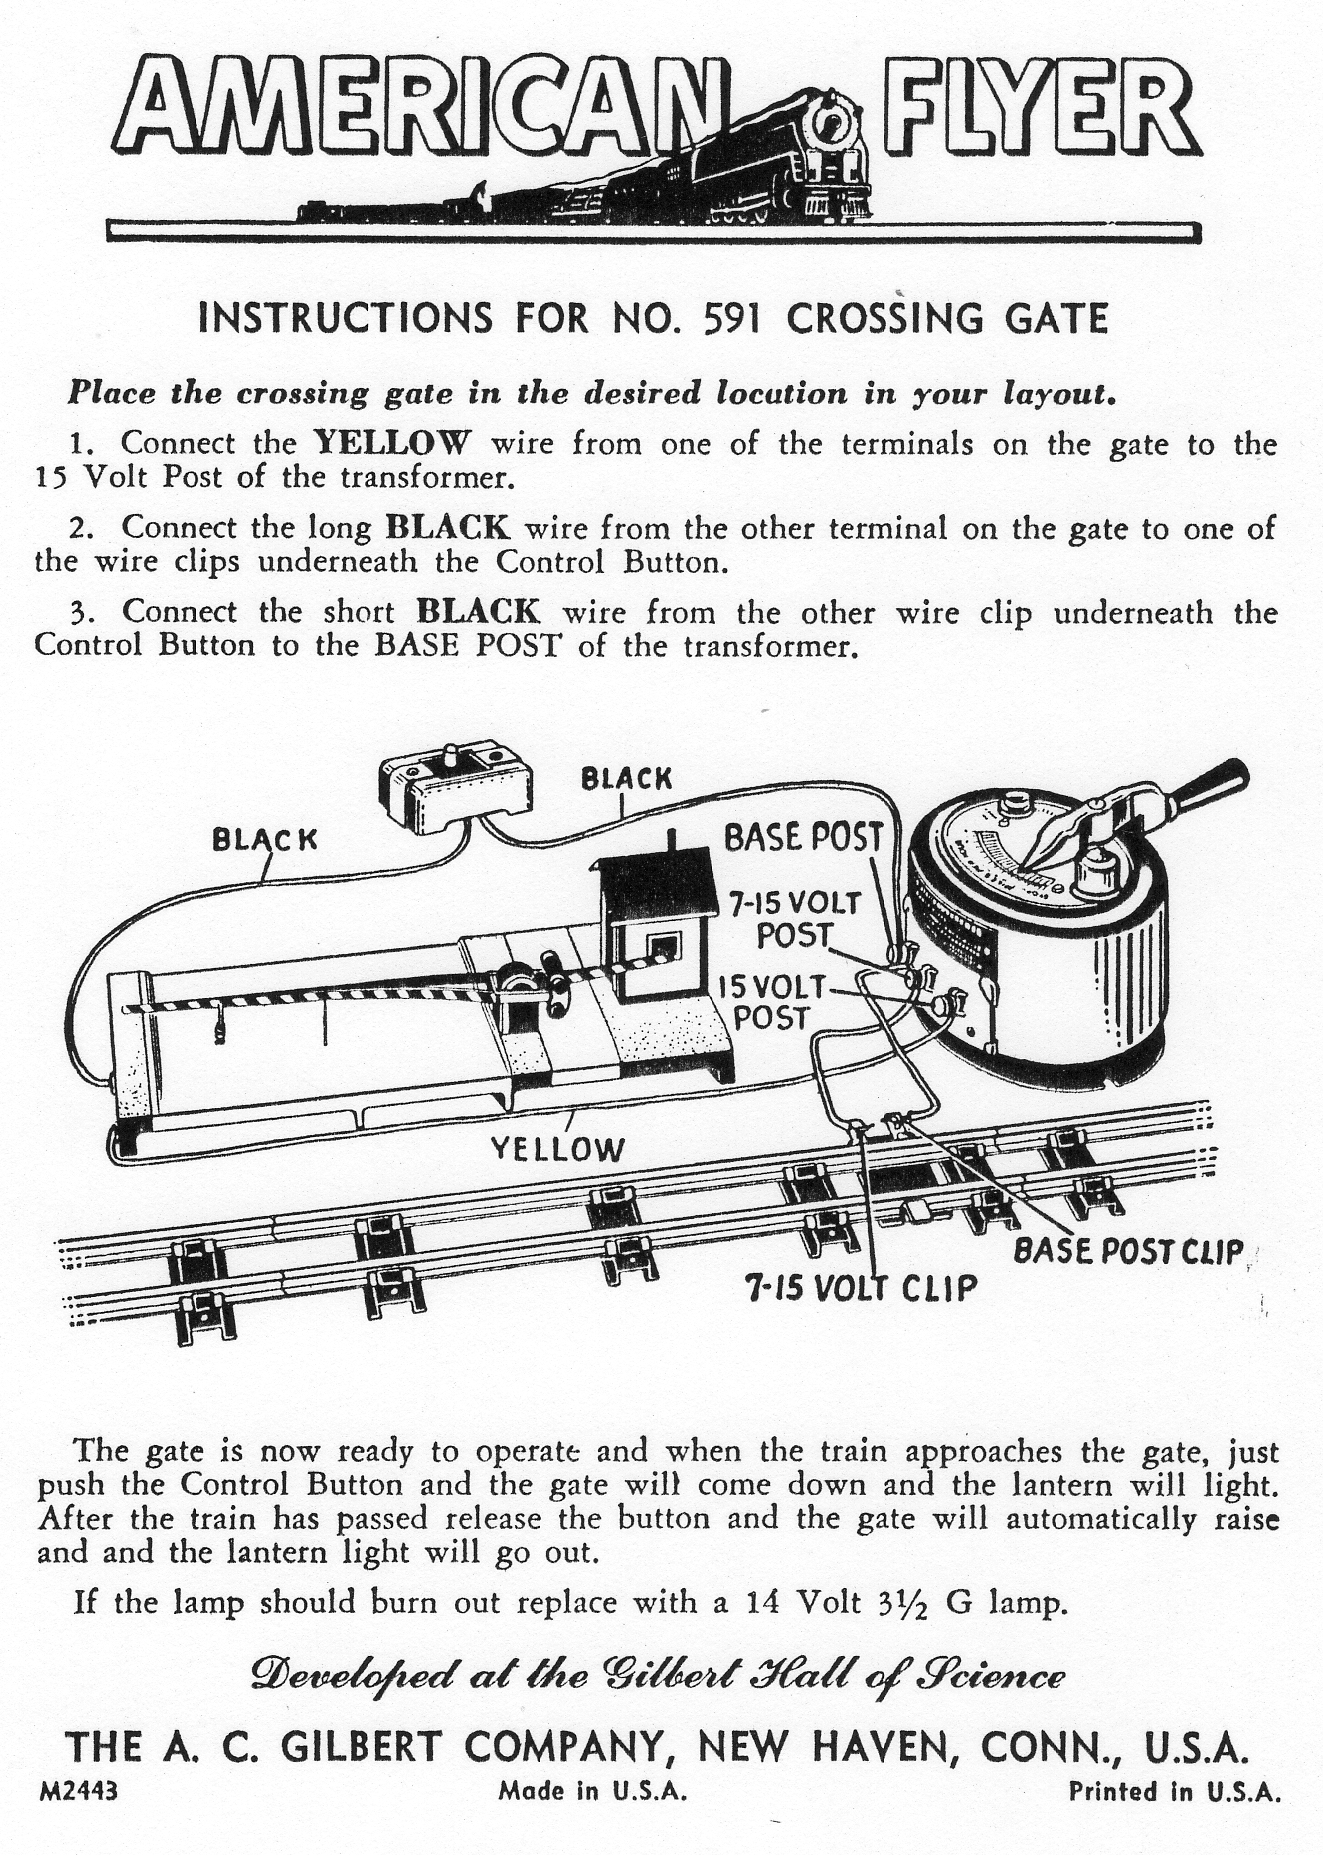 American Flyer Wiring Instructions